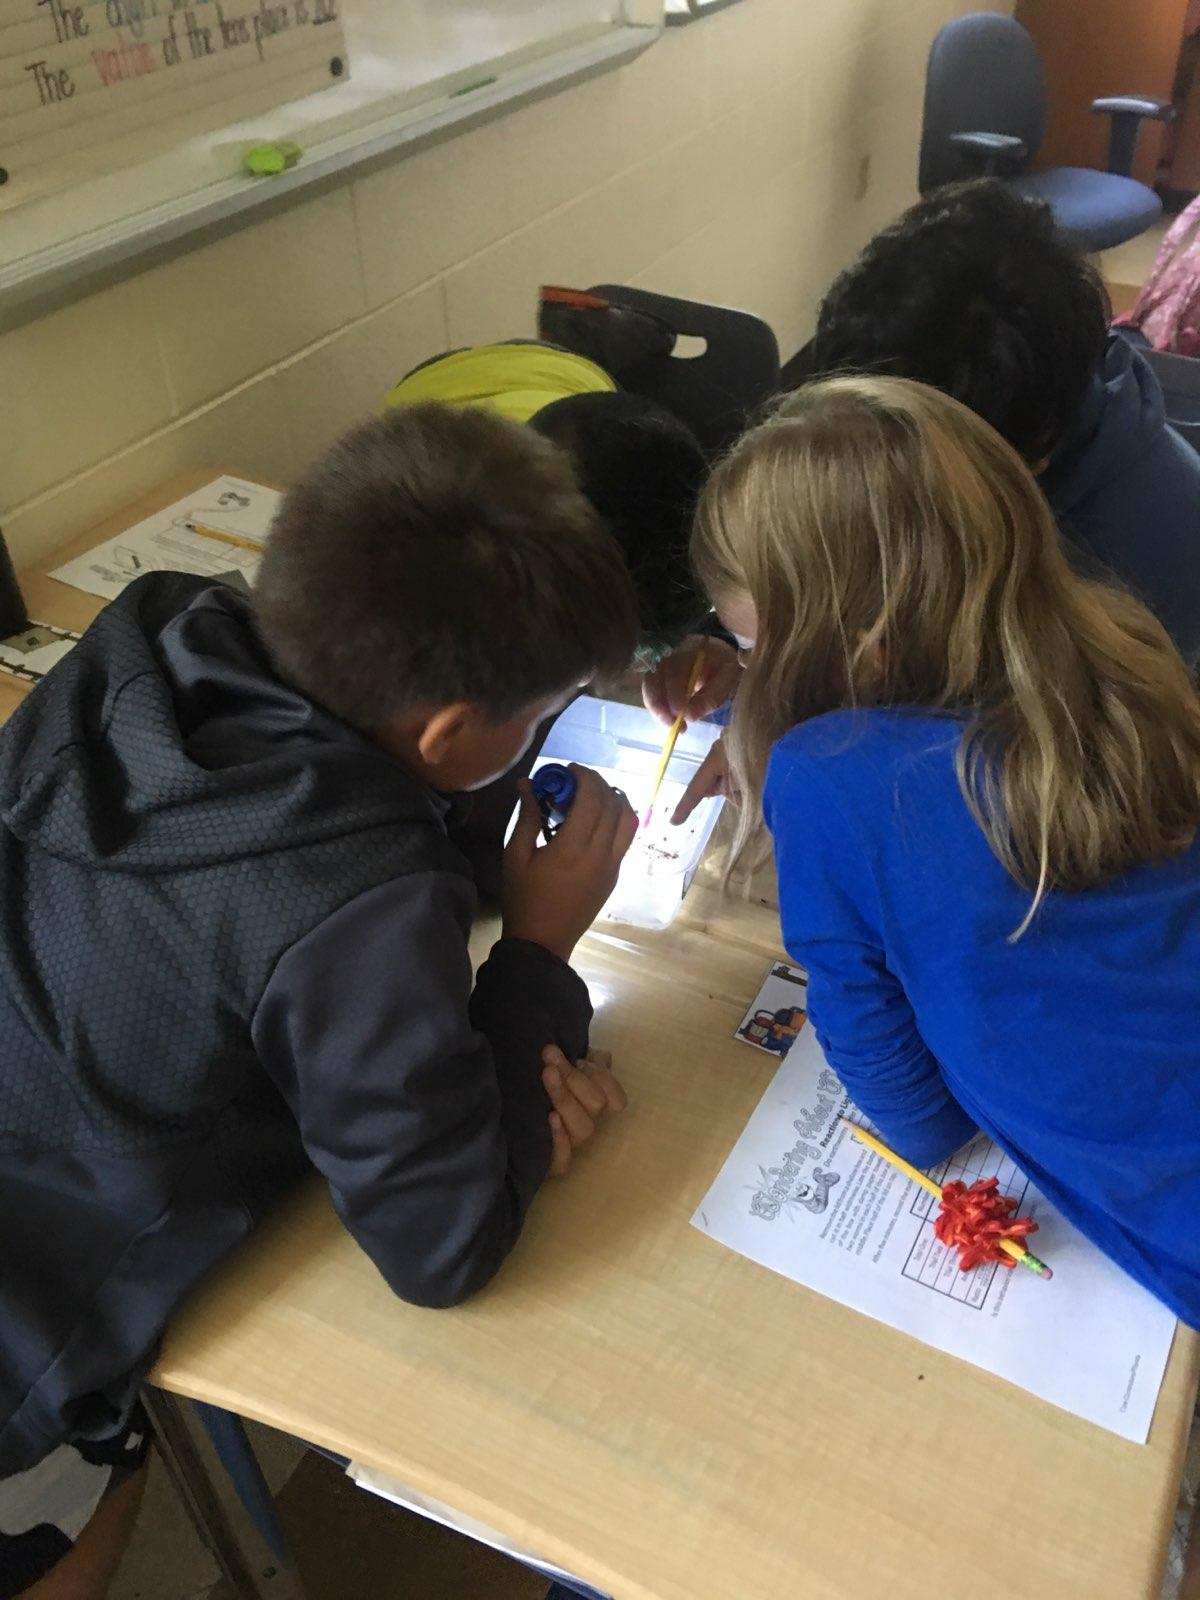 students holding flashlight looking at worms